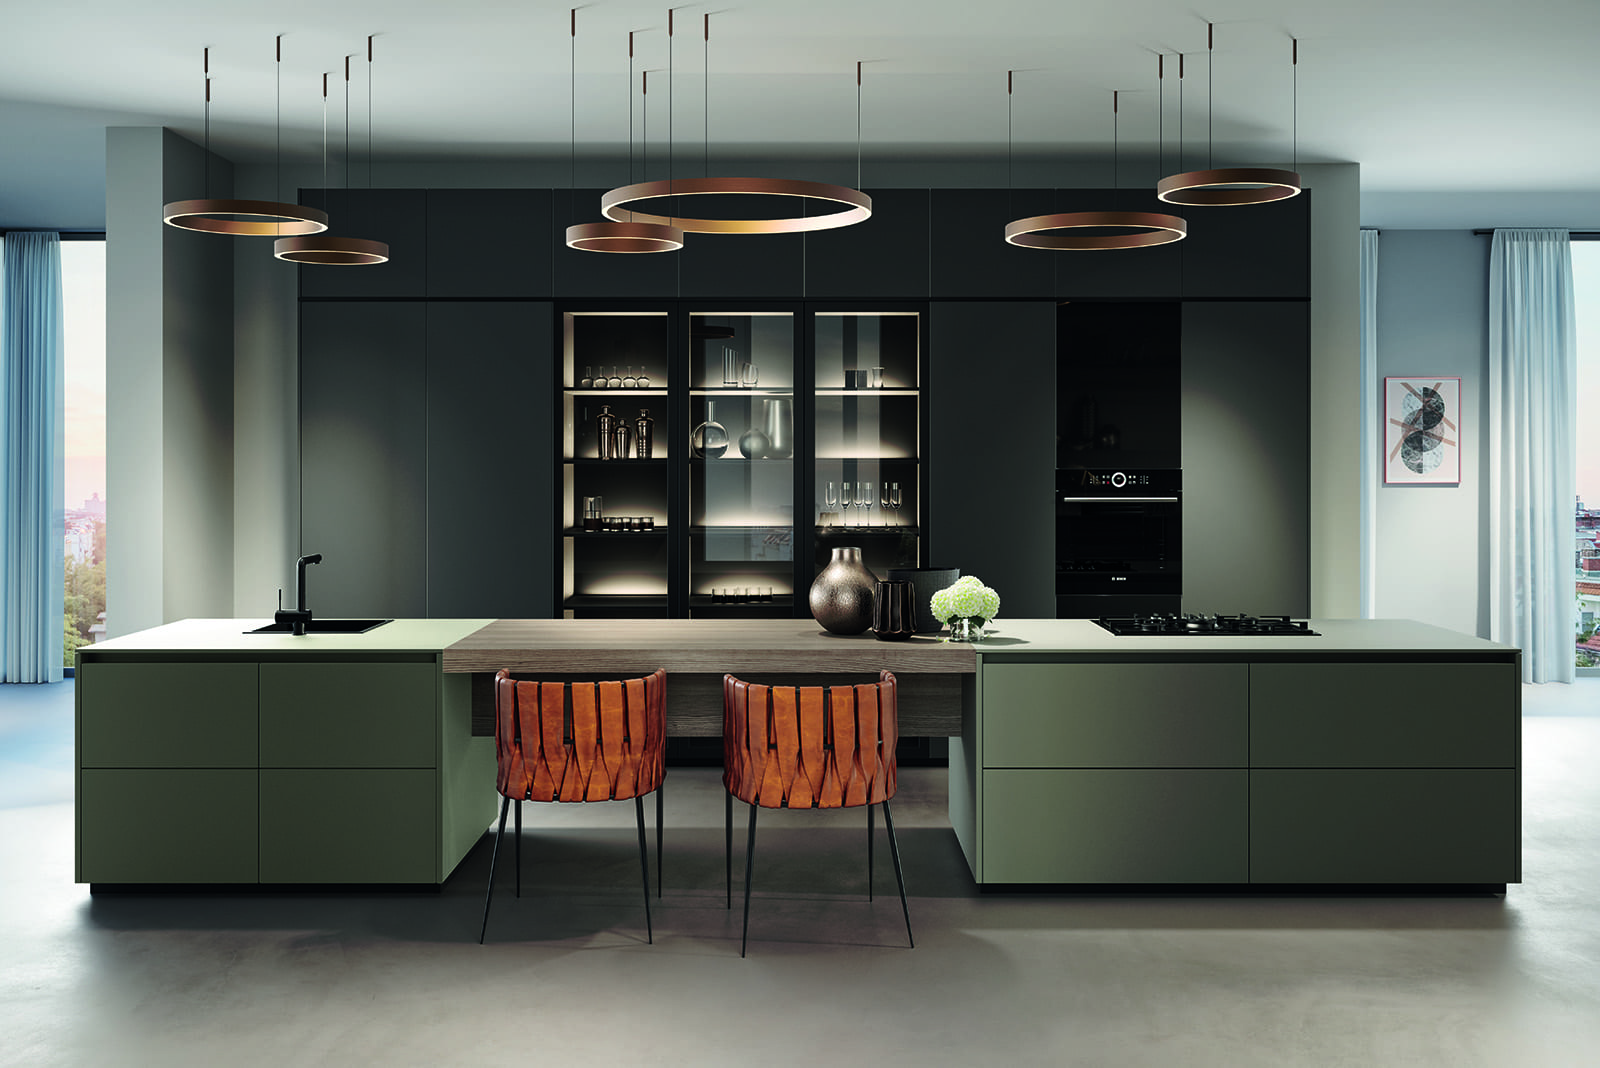 Twelve top tips for planning the perfect kitchen | Qudaus Living